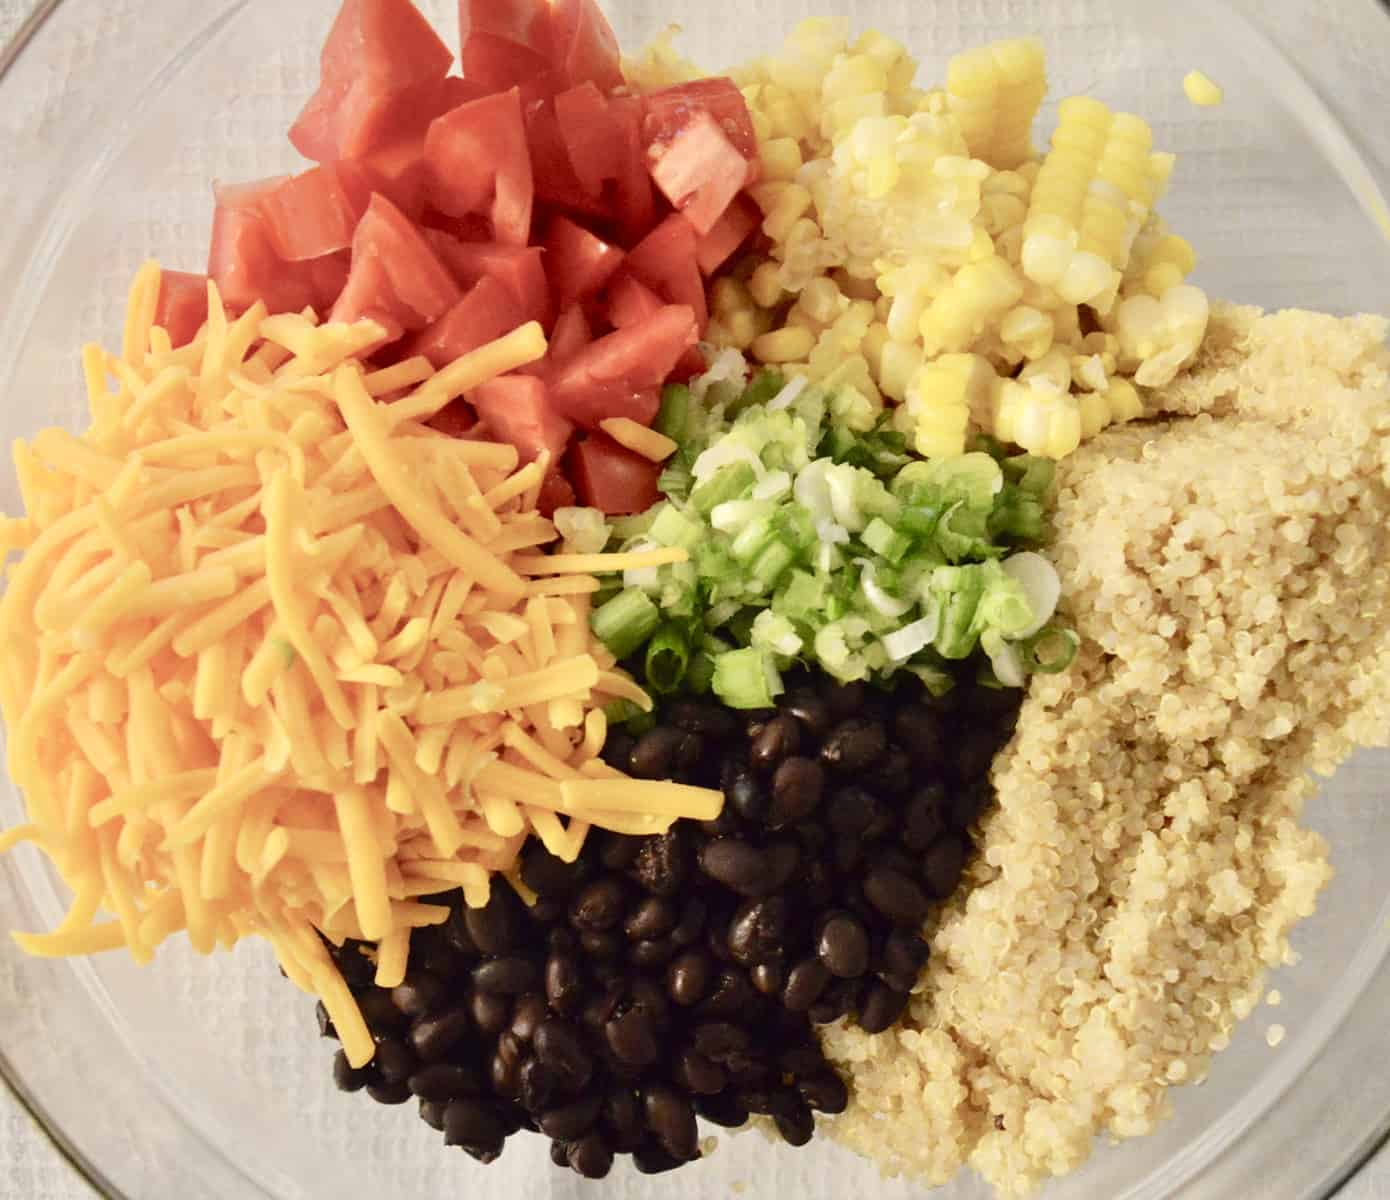 grains, black beans, corn, and cheese in a bowl